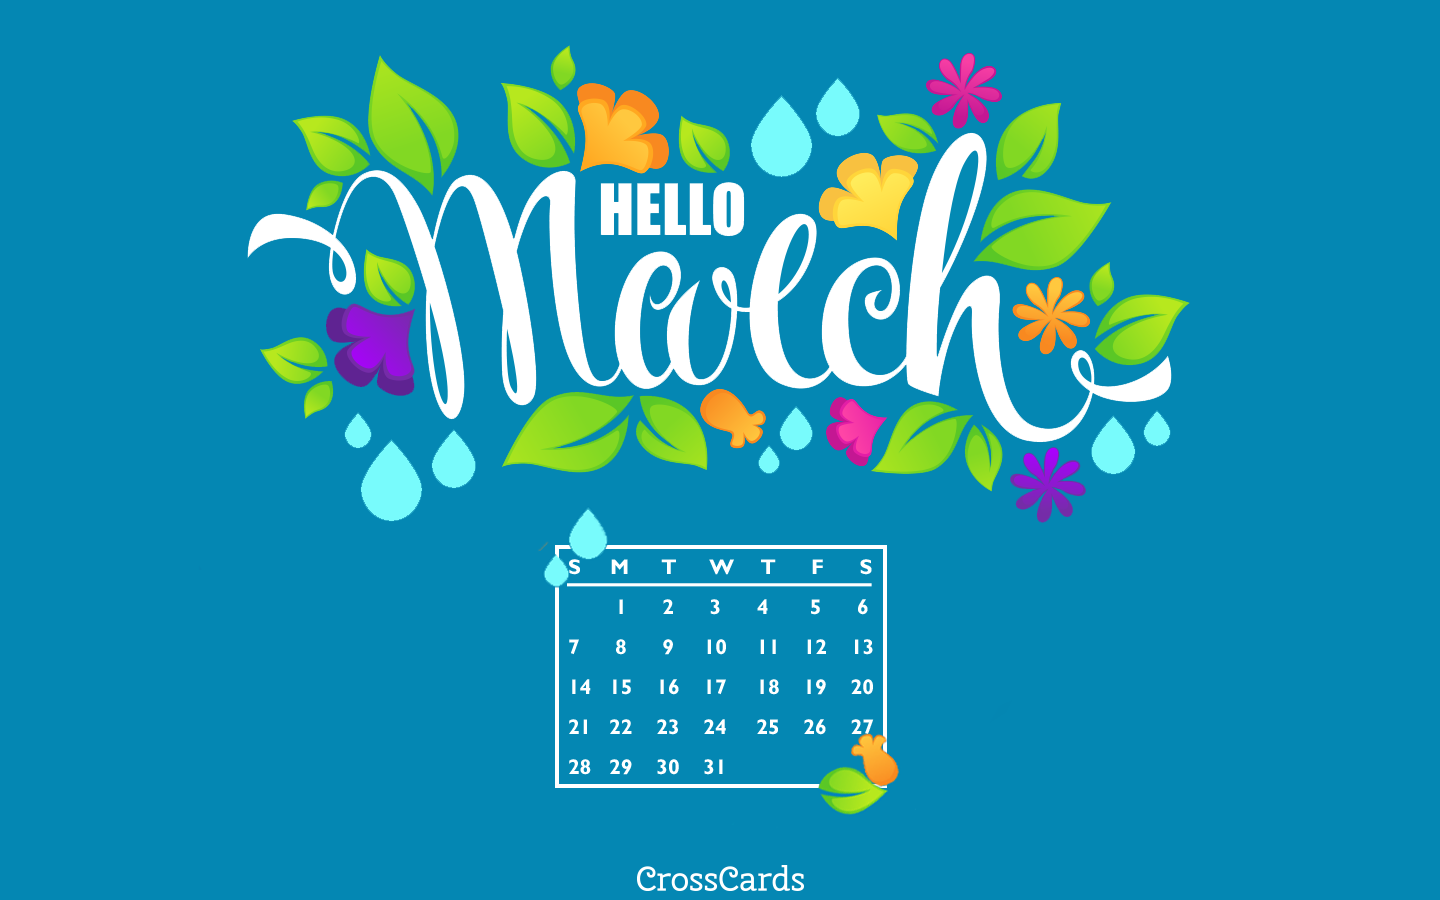 March 2021 - Hello March! mobile phone wallpaper